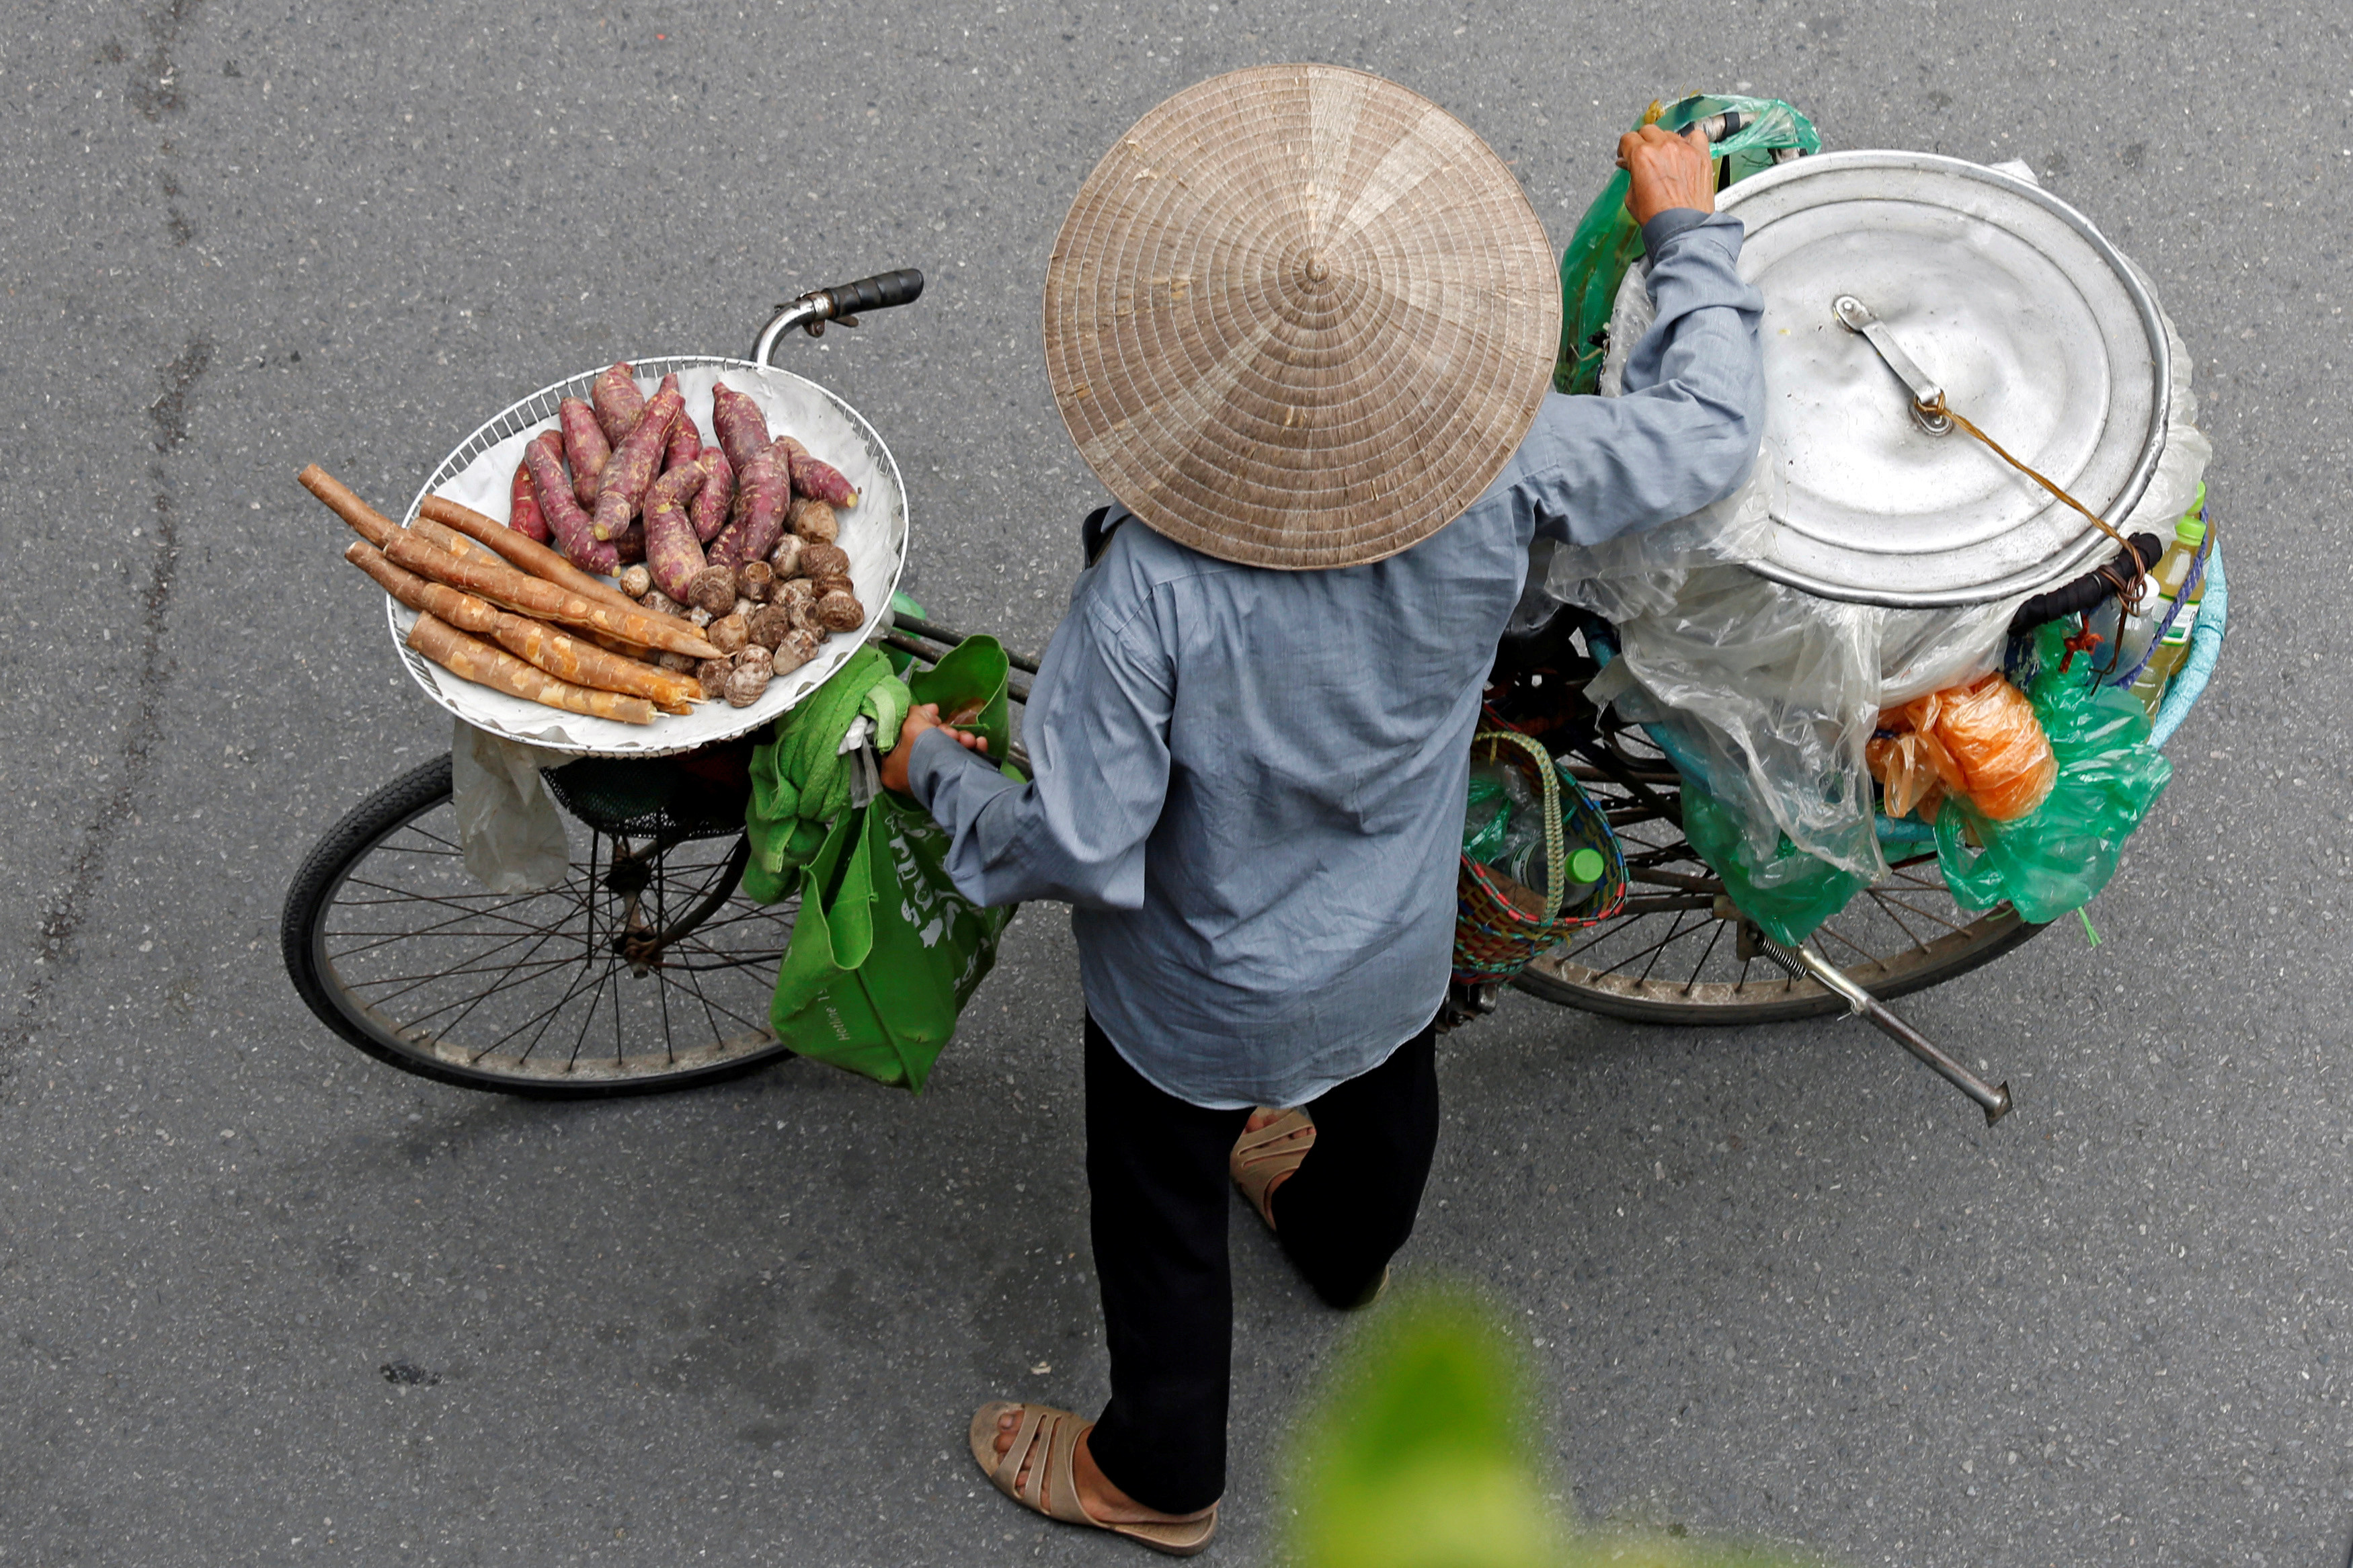 A Vietnamese woman transports cooked cassava and potato for sale by a bicycle on a street in Hanoi, Vietnam August 29, 2017. REUTERS/Kham - RC1ED76929E0